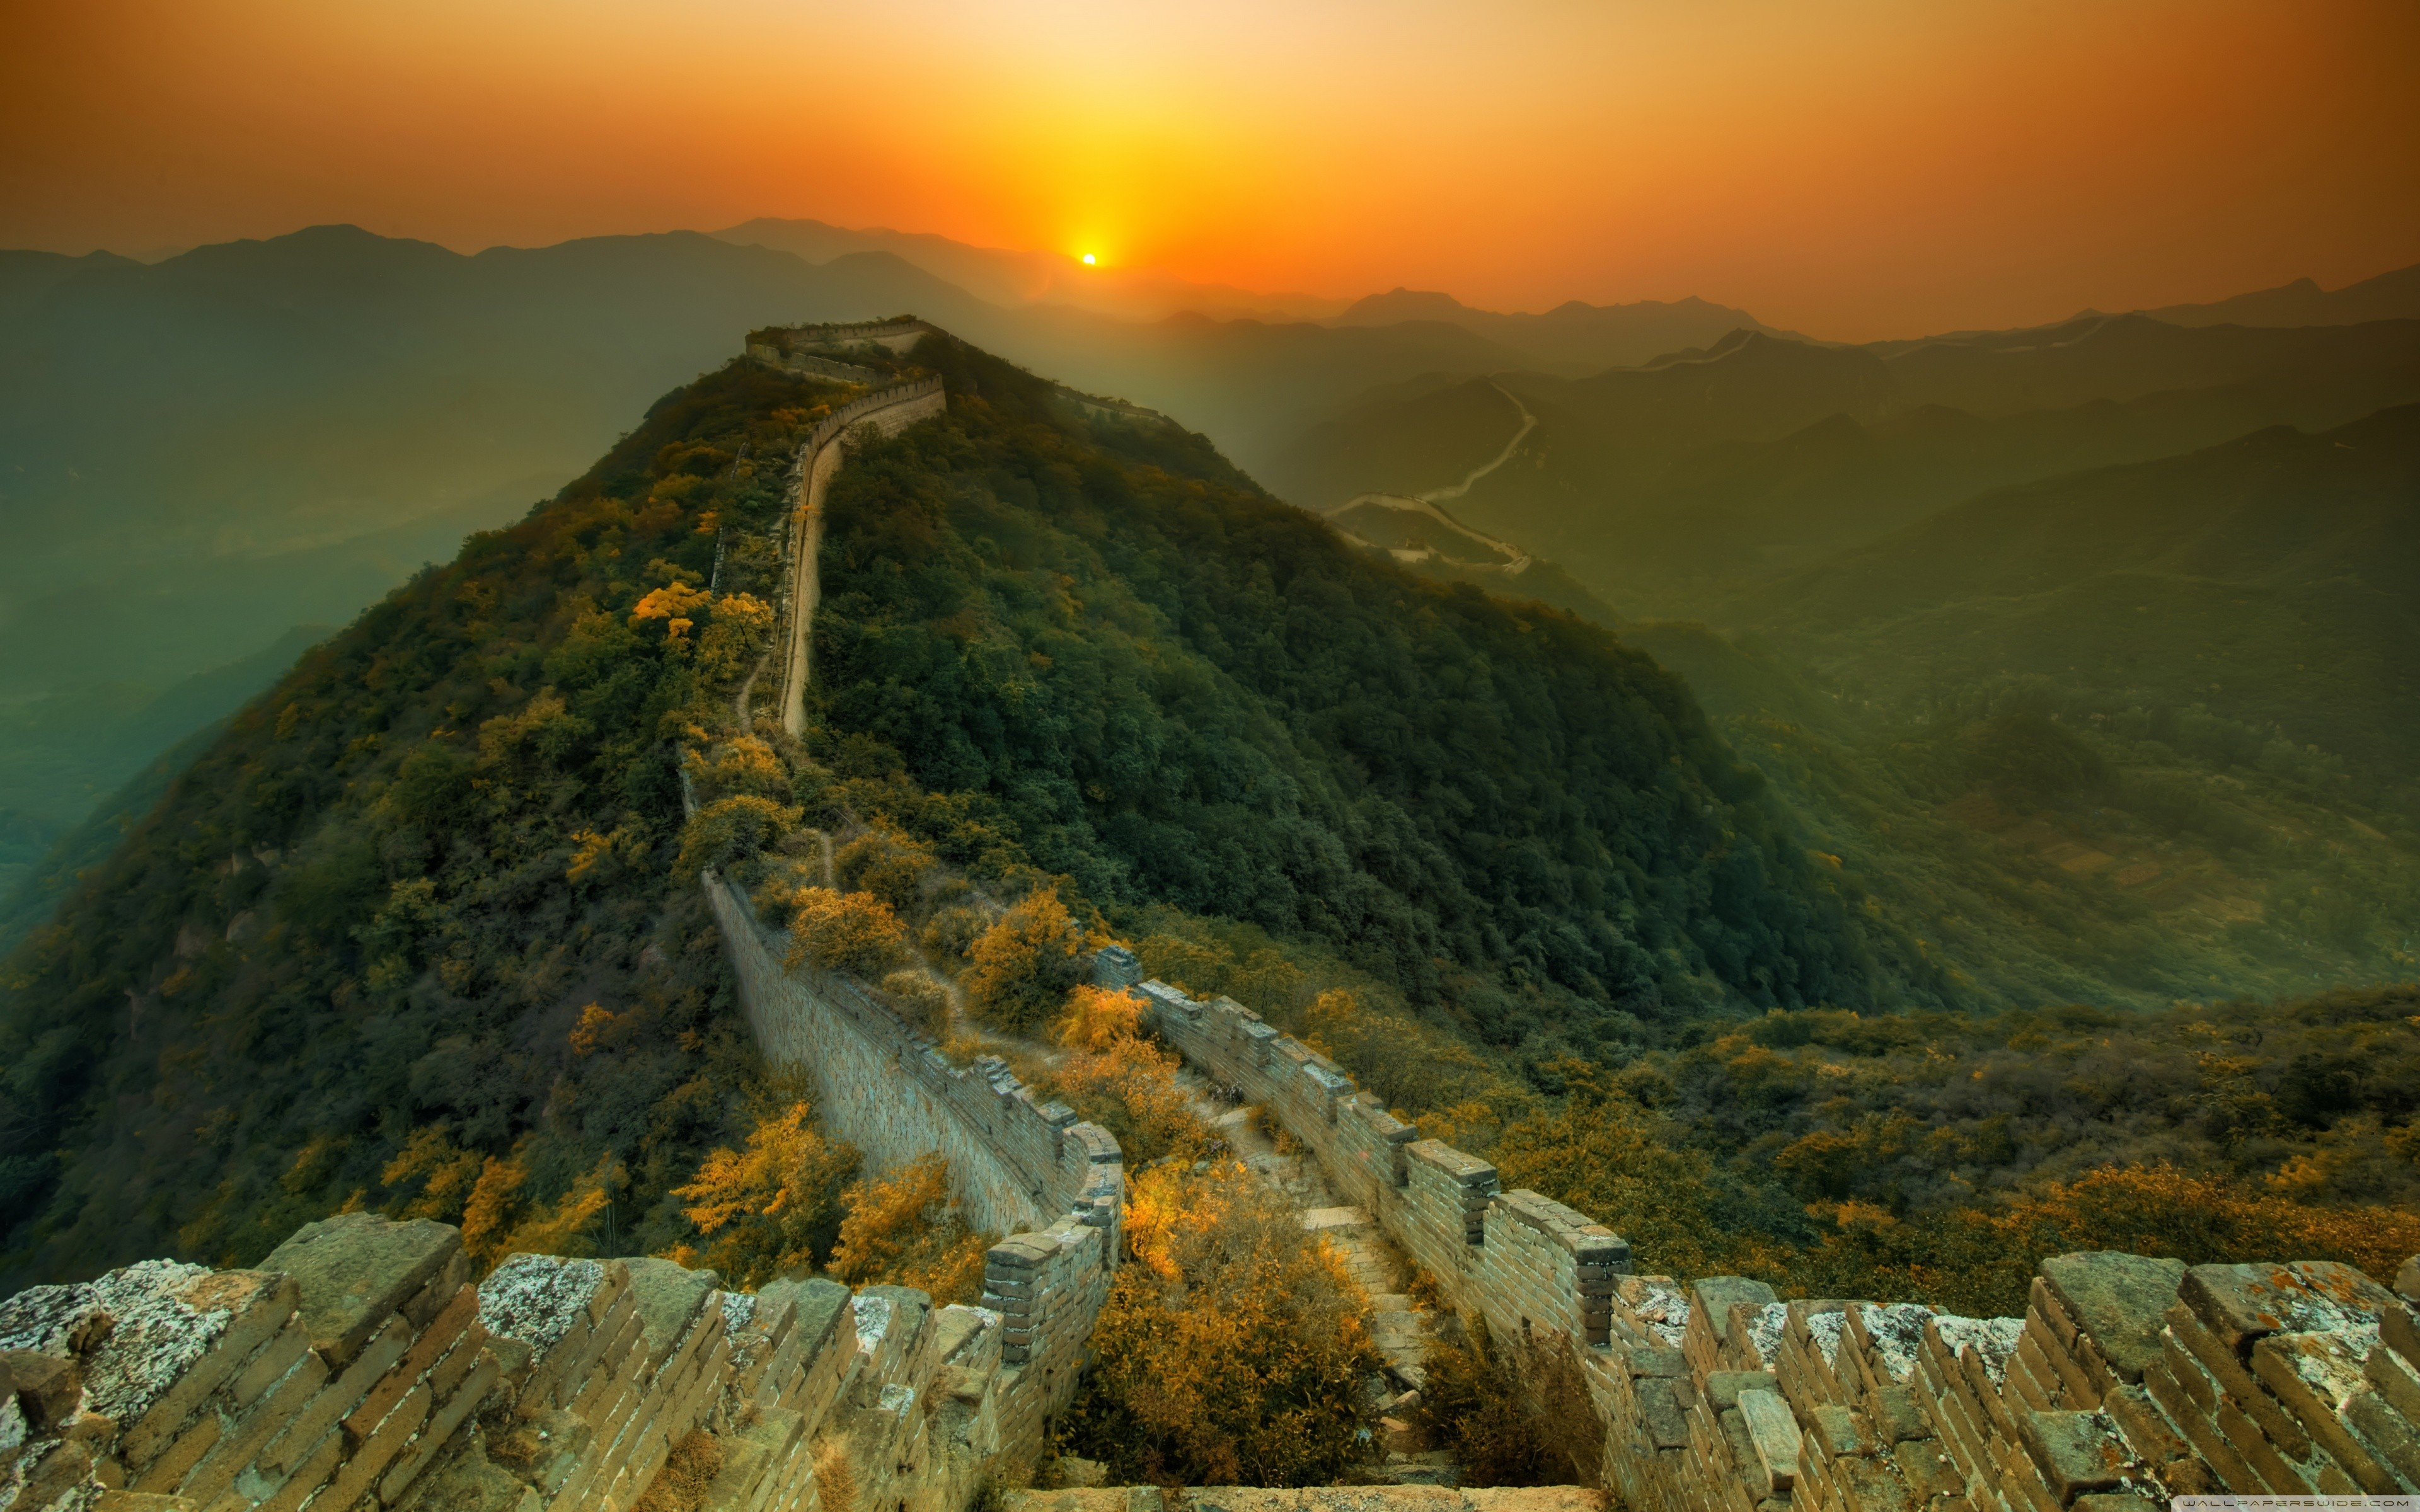 Landscapes sunrise sunset wall China